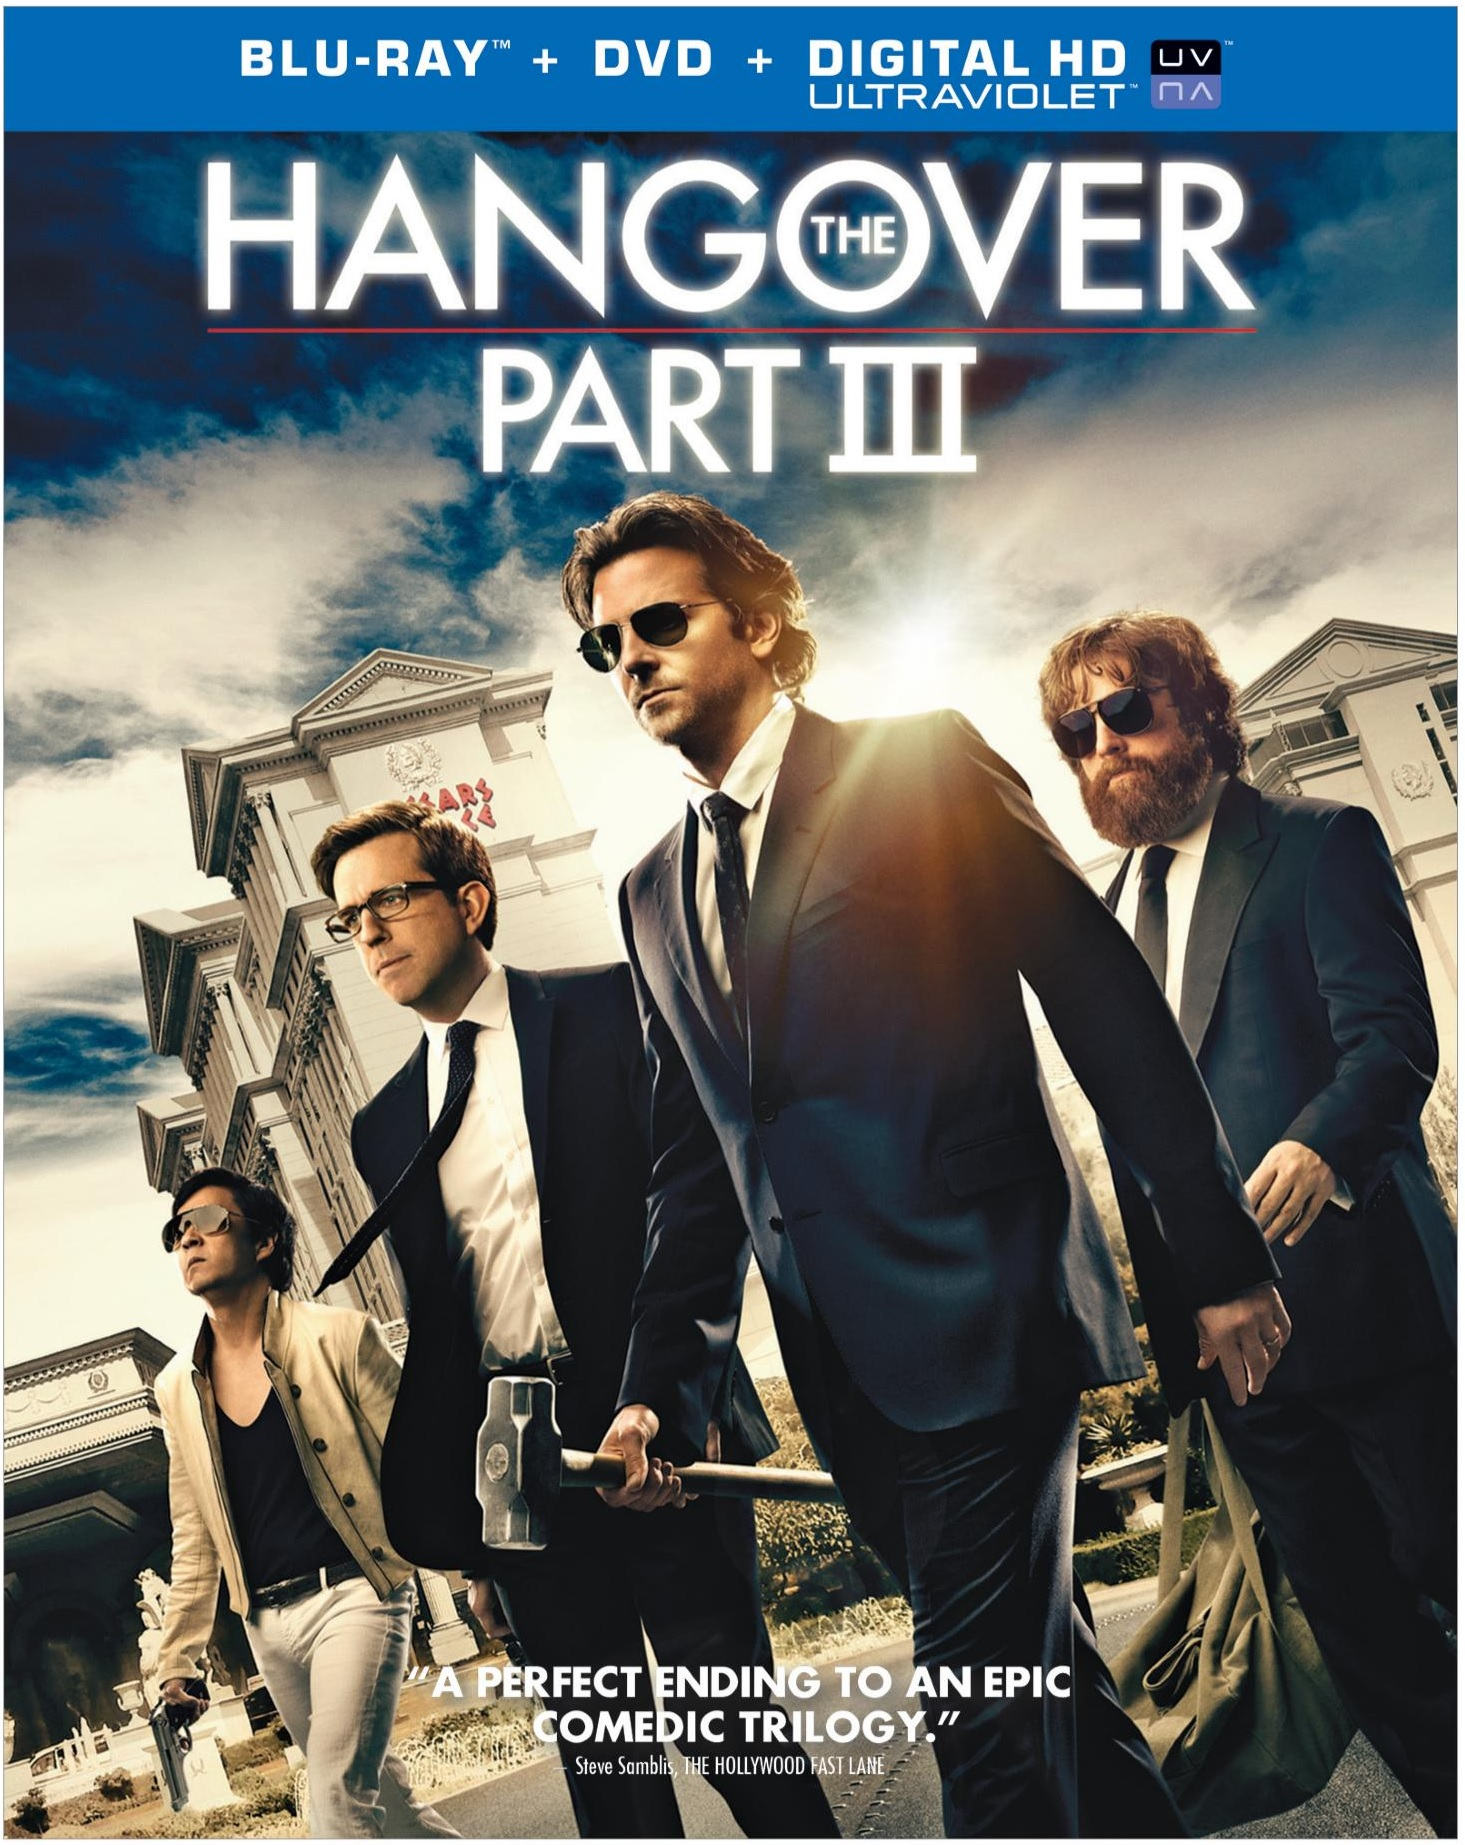 The Hangover Part 3 Blu-ray Review